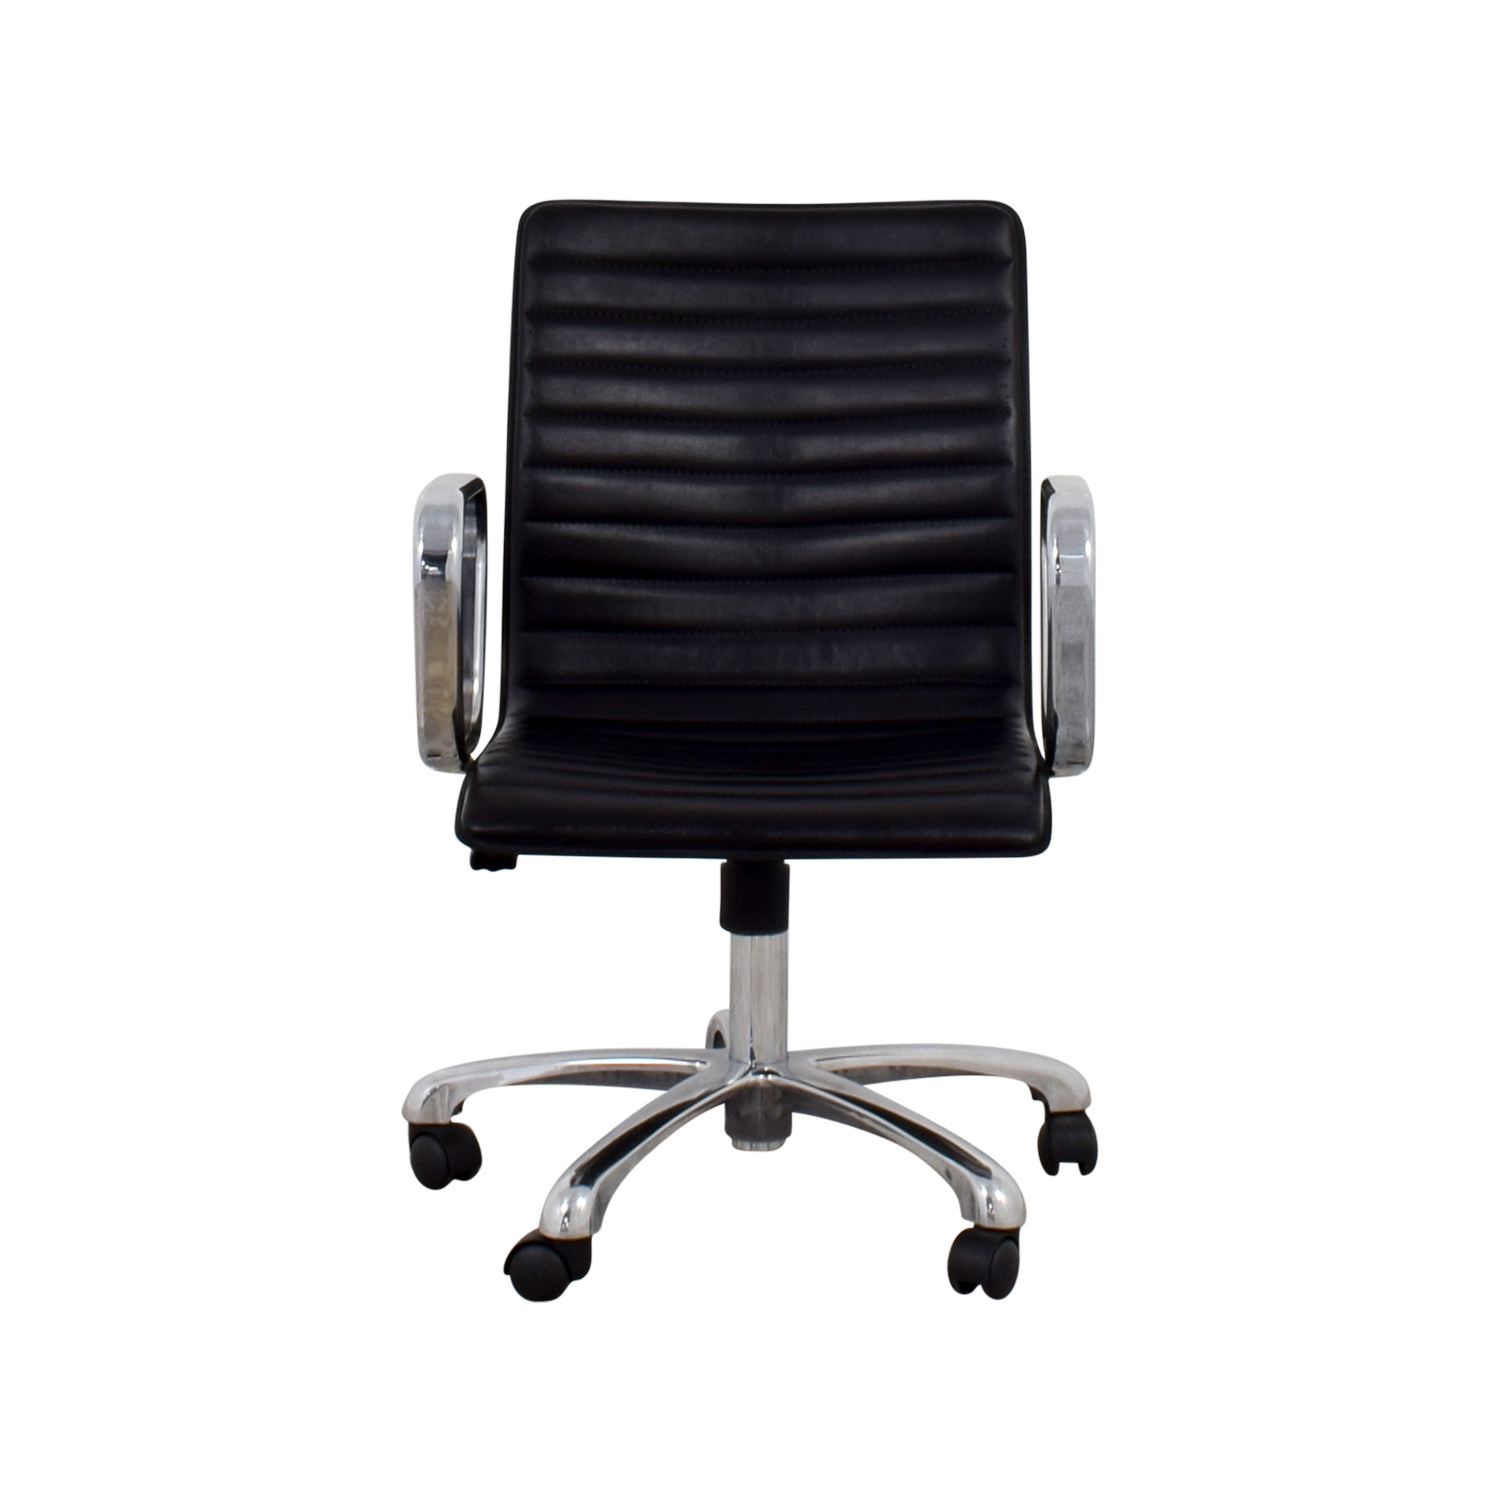 Crate & Barrel Ripple Leather Office Chair sale